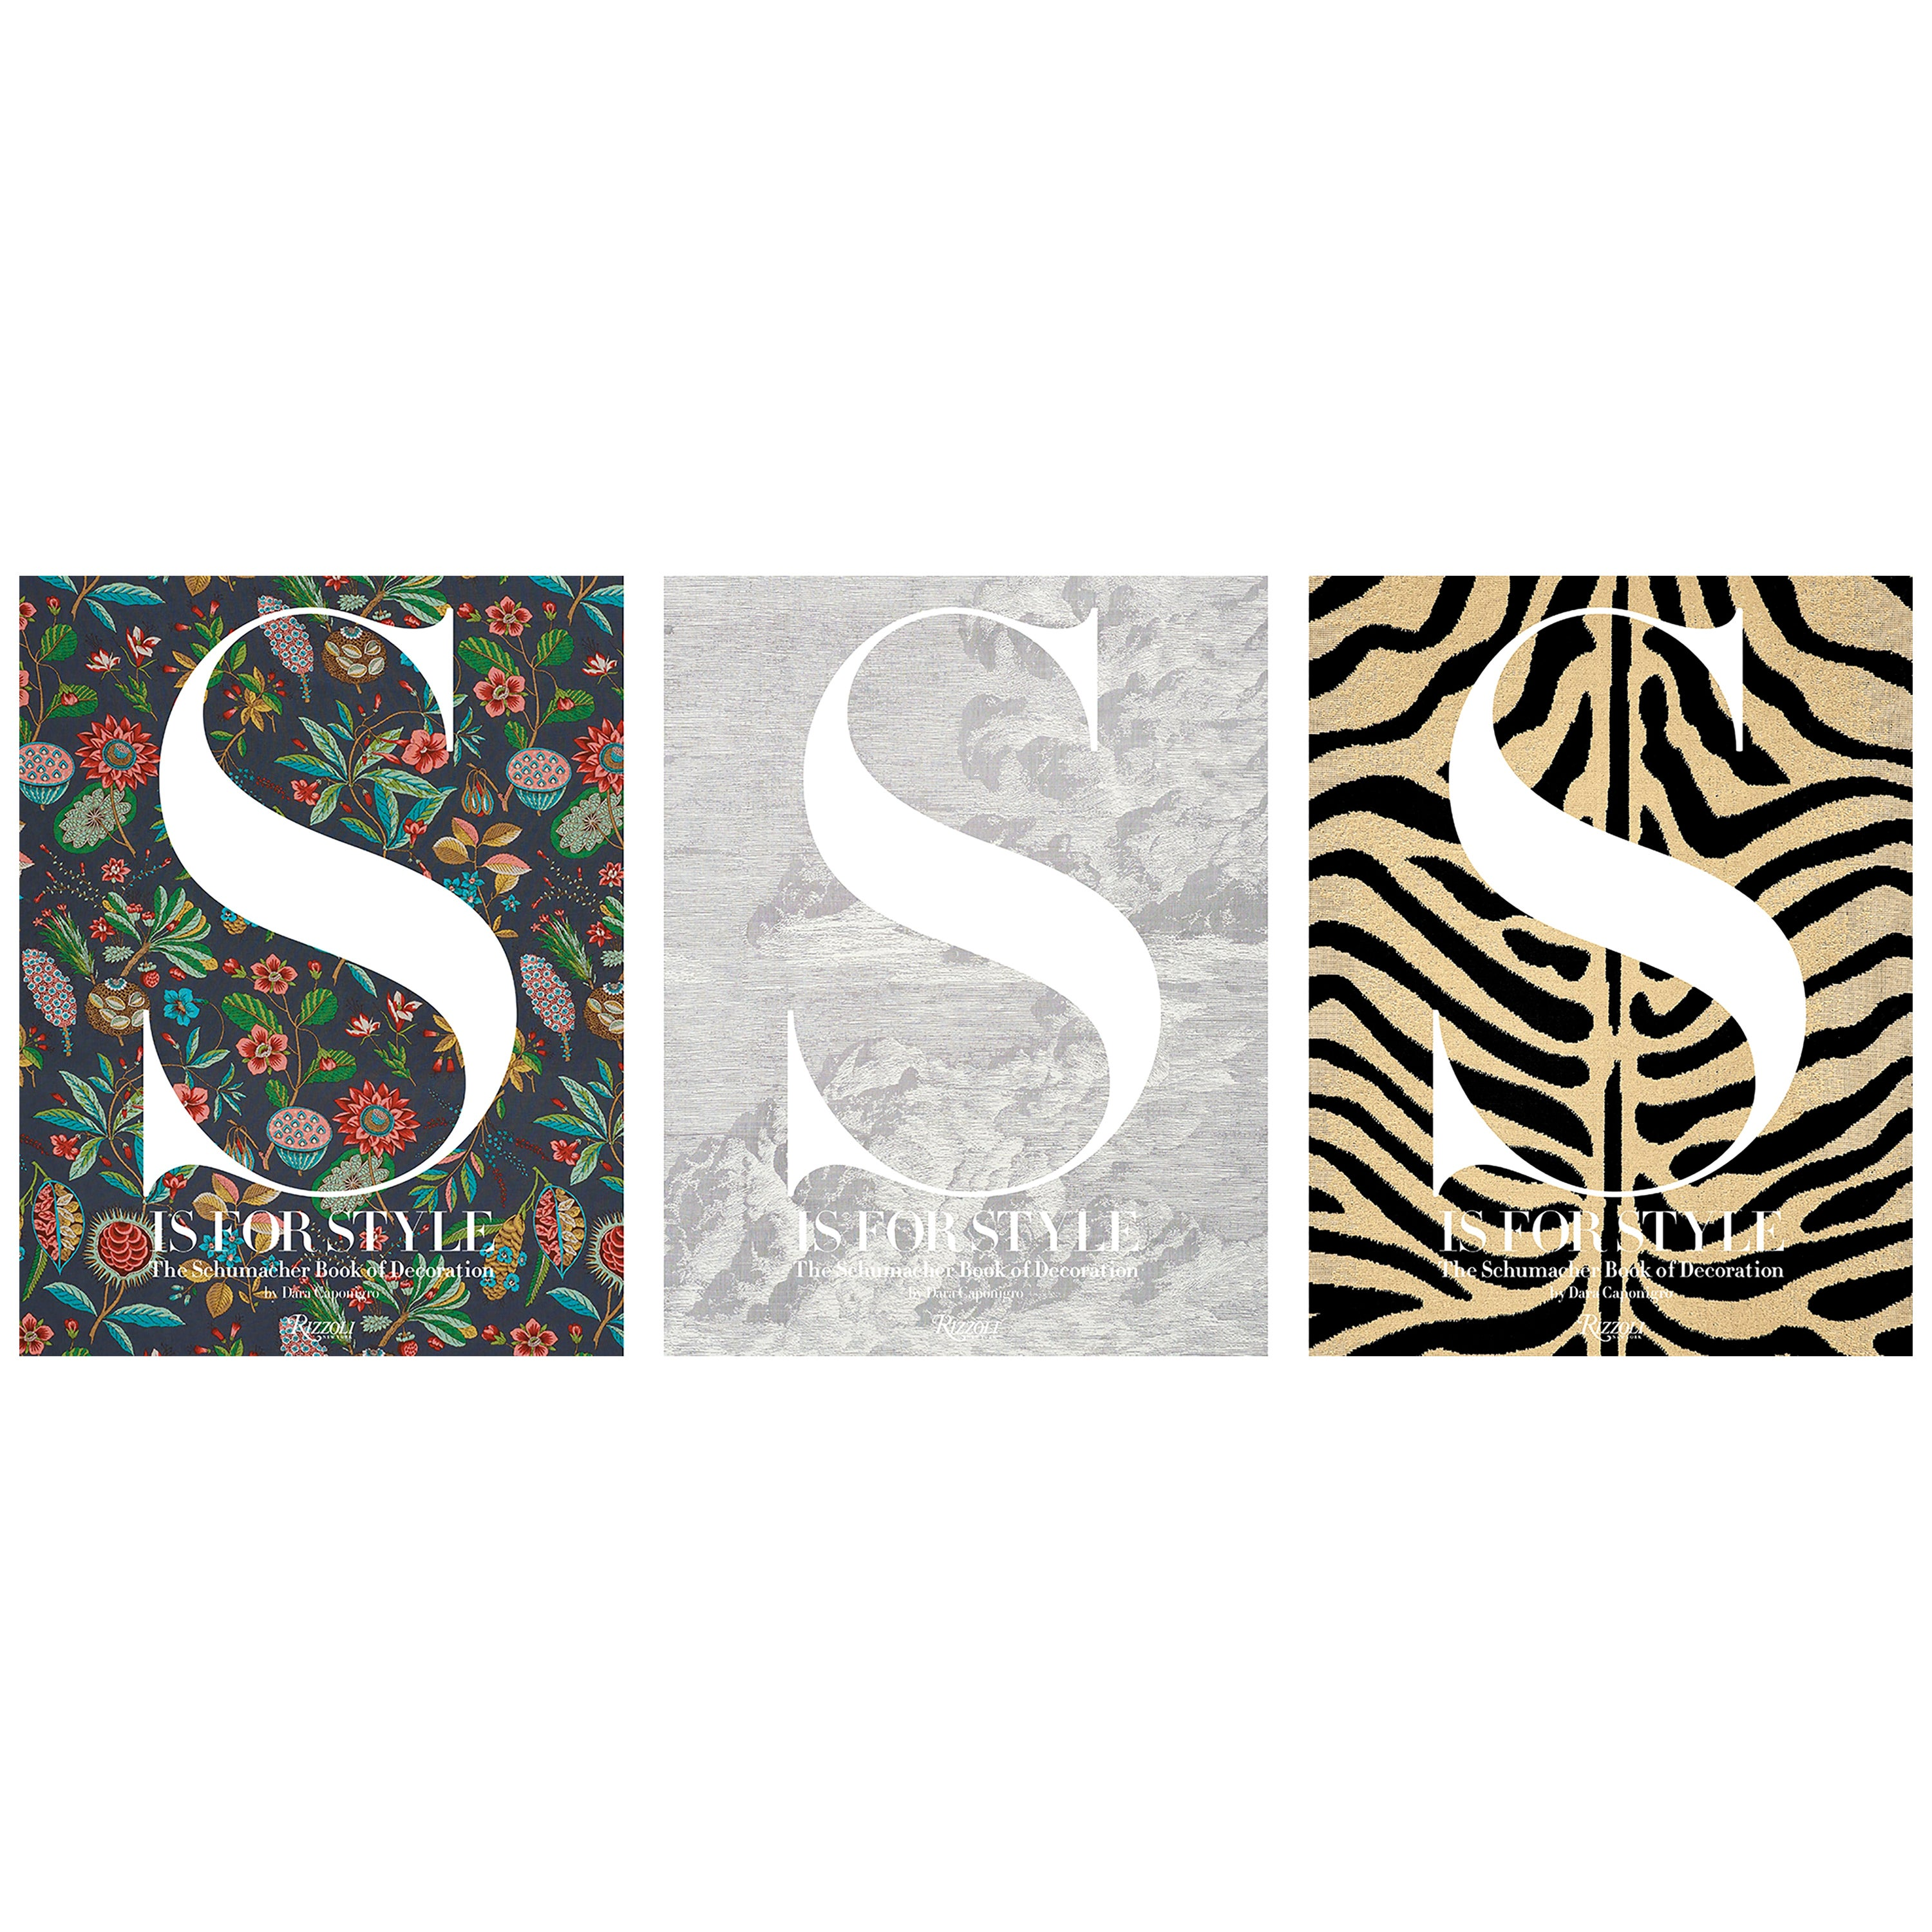 S Is for Style The Schumacher Book of Decoration